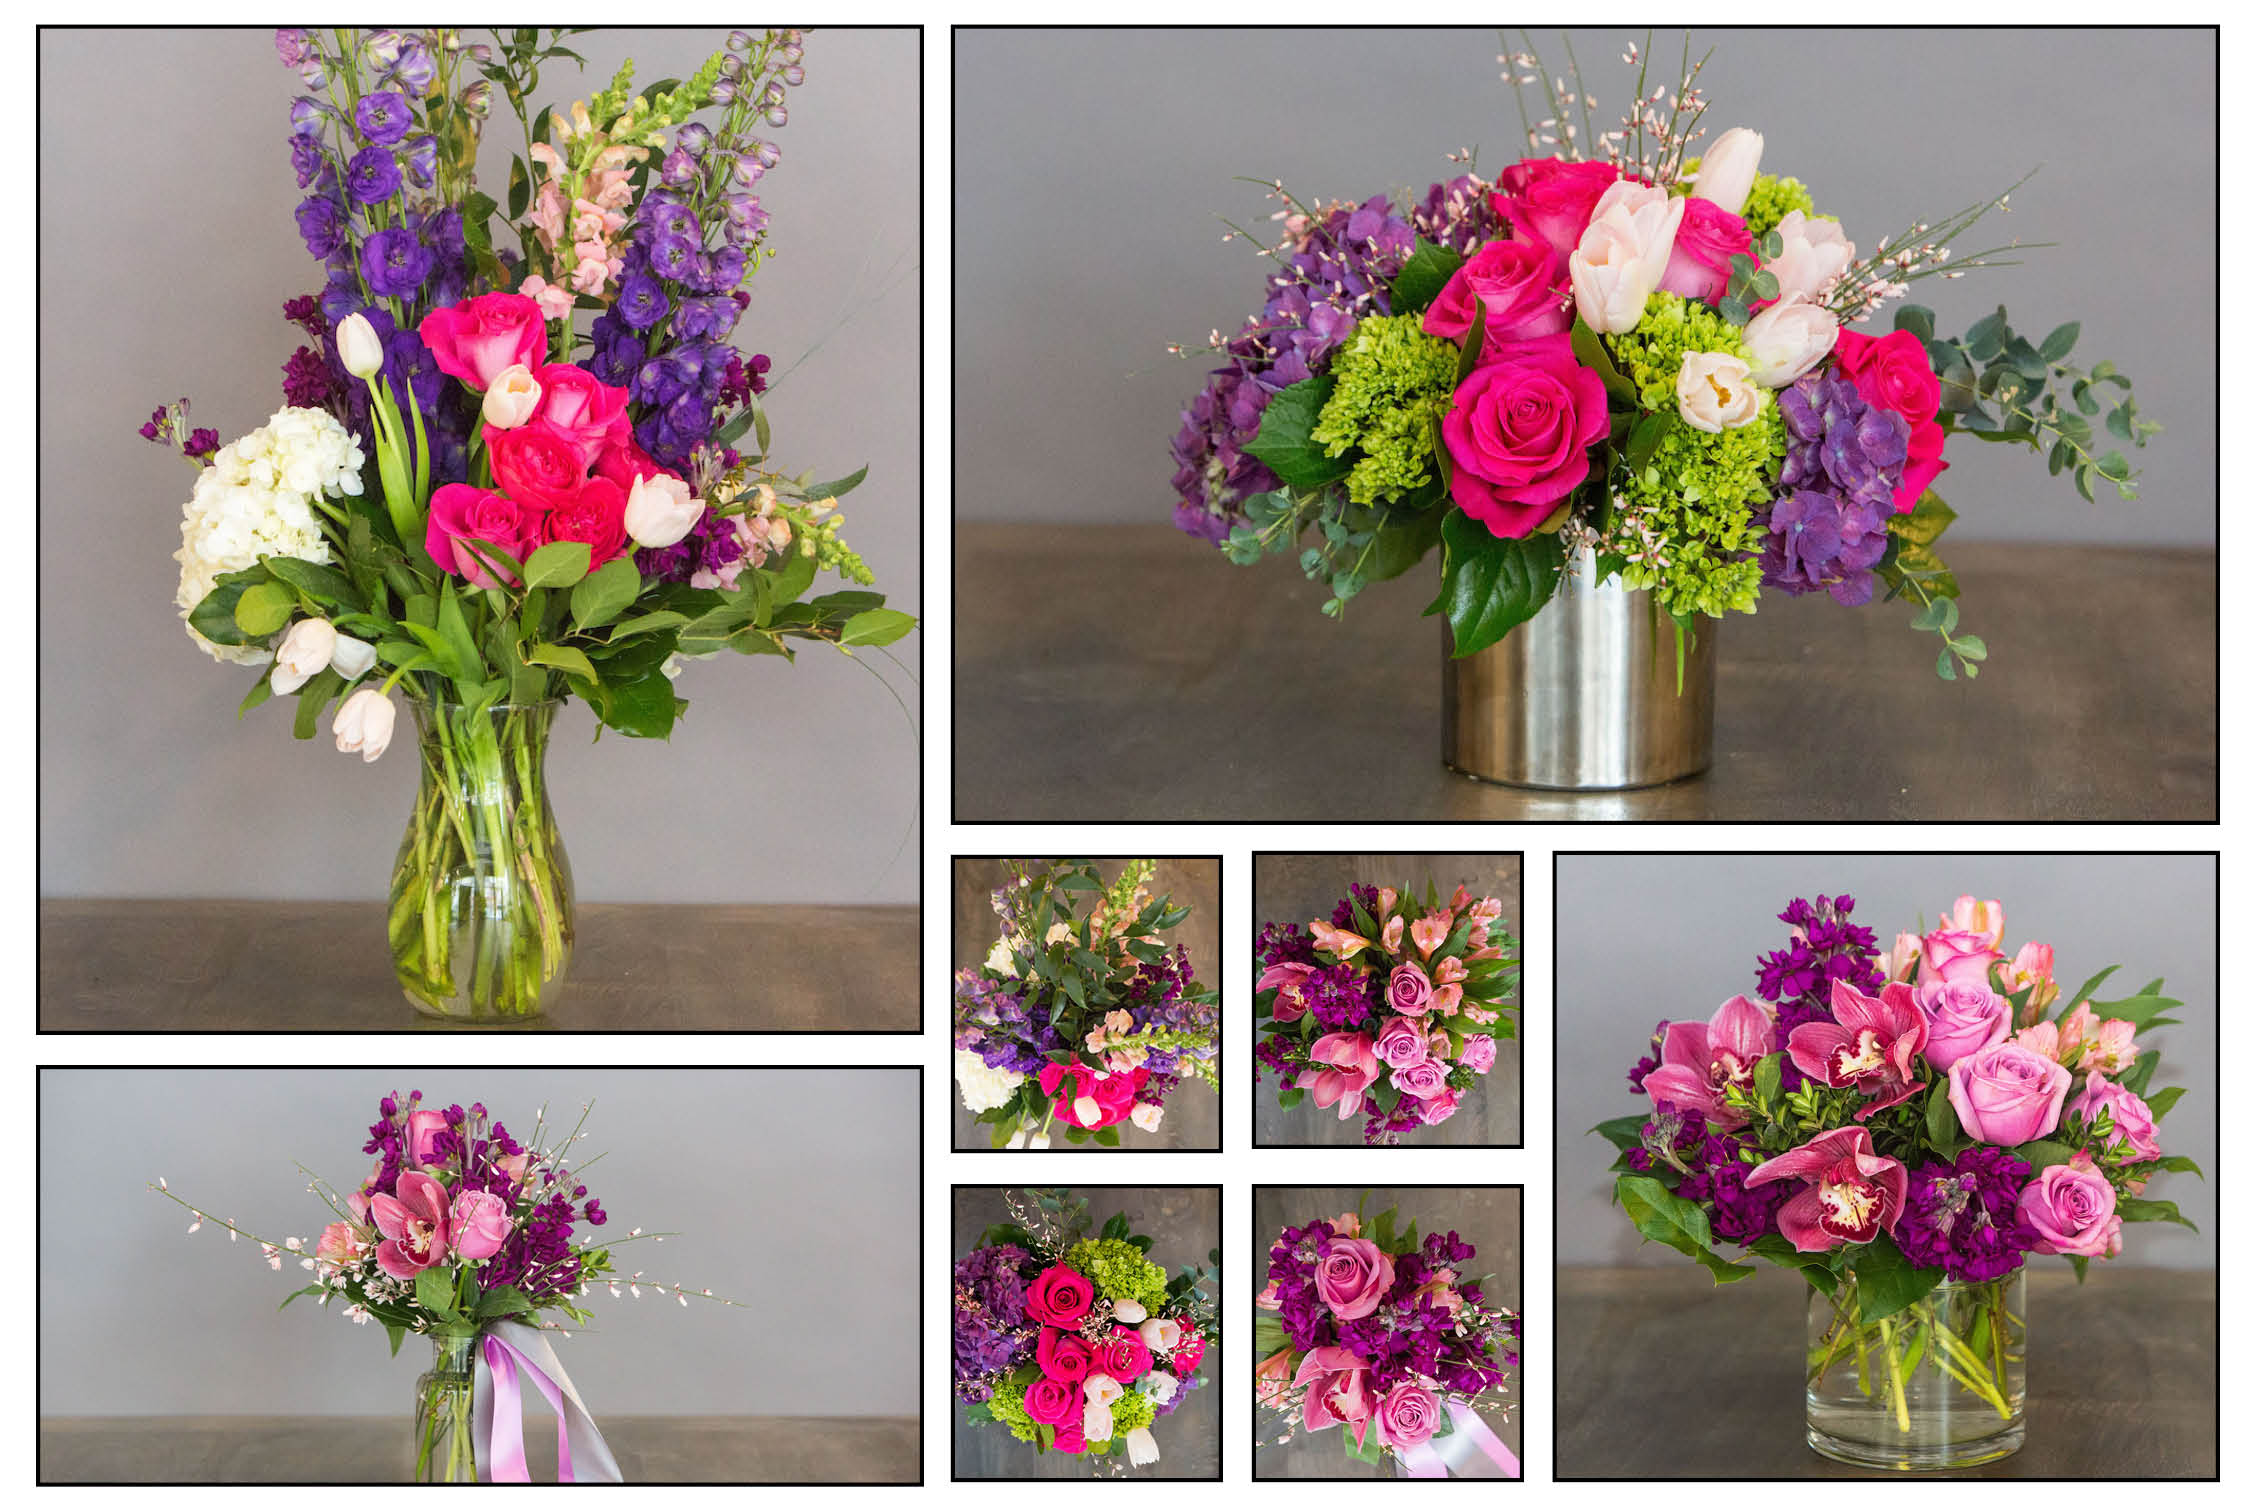 Purples: All Yours (top, left), Cupid's Best (top, right), Love Me (bottom, right) and Mine (bottom left).